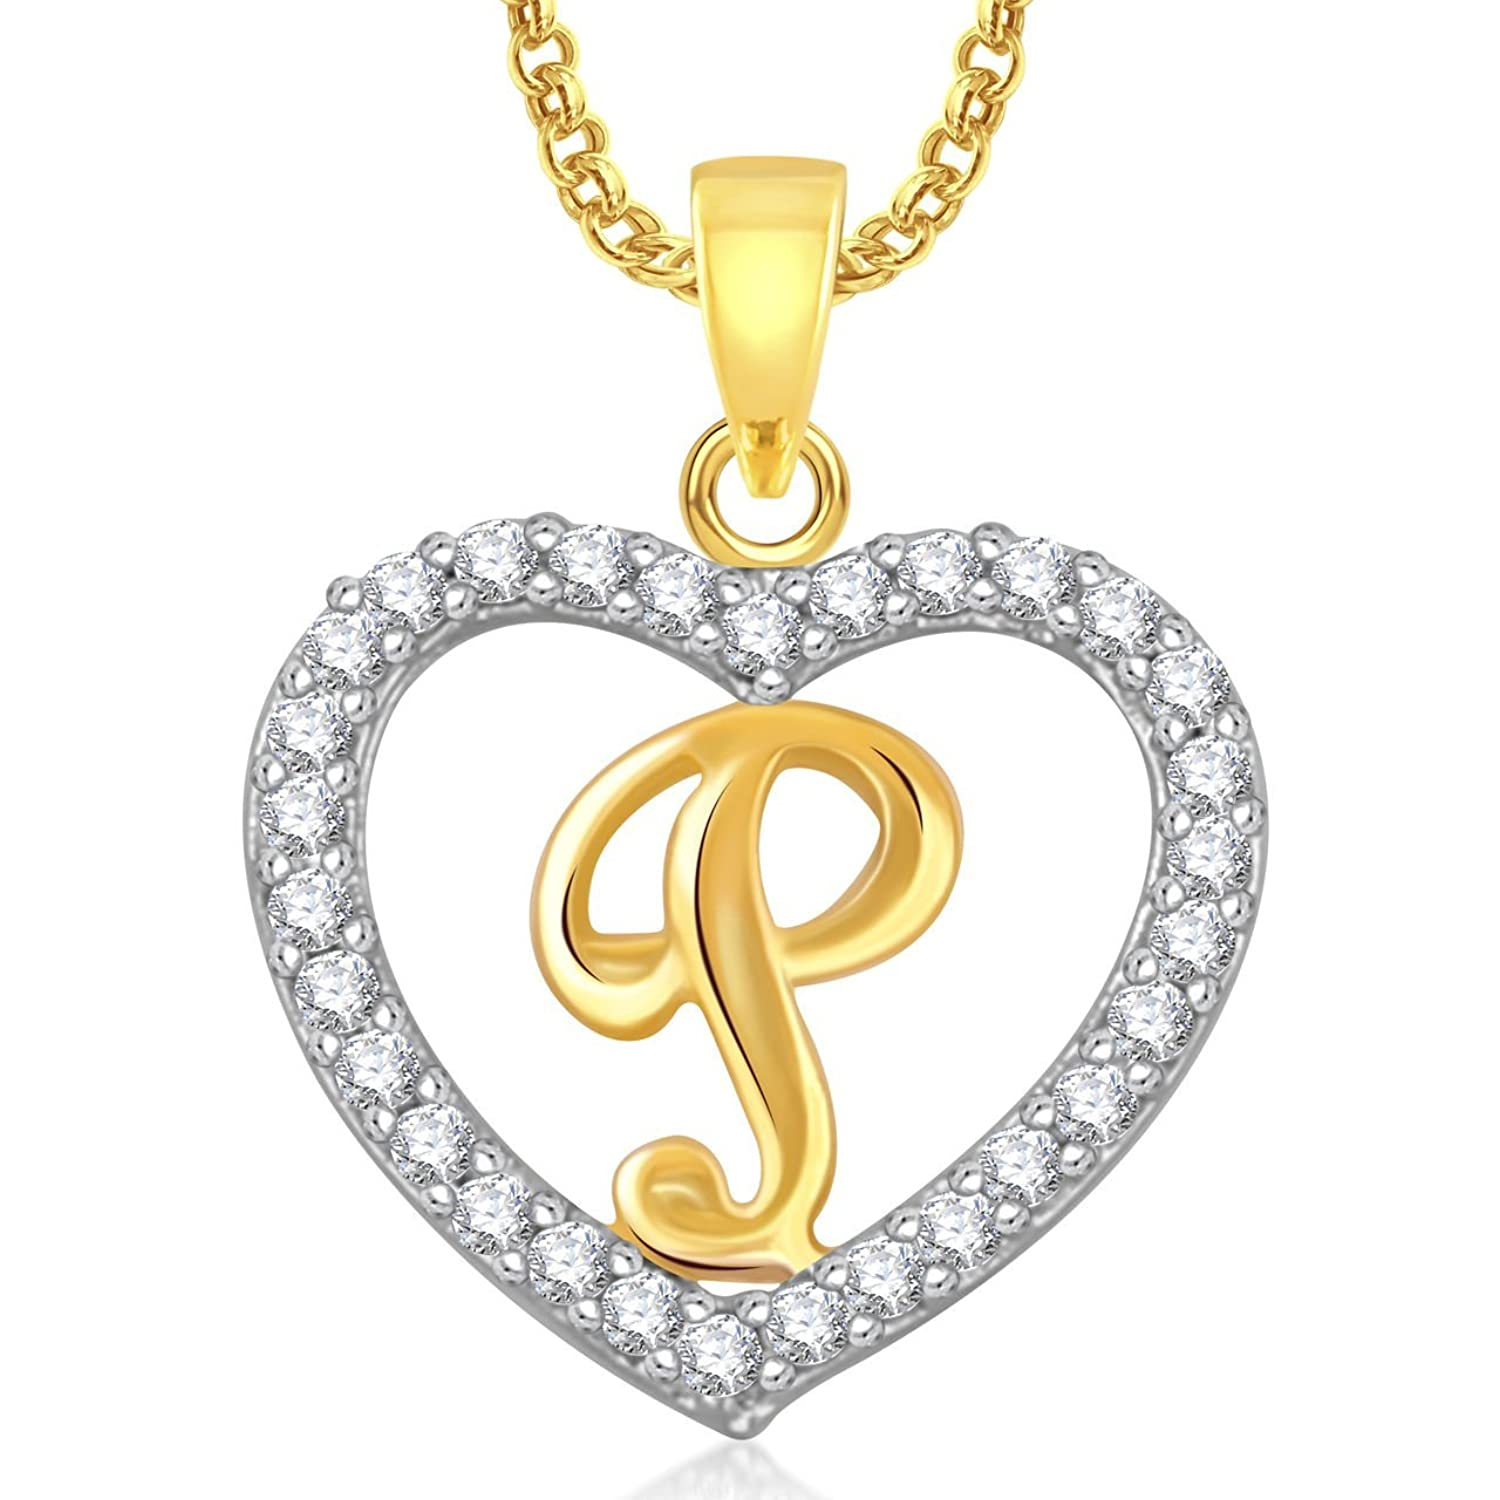 Buy Valentine Gifts Amaal Heart U0027Pu0027 Alphabet Pendant For Girls U0026 Women With  Chain PS0408 Online At Low Prices In India | Amazon Jewellery Store    Amazon.in  P&l Sheet